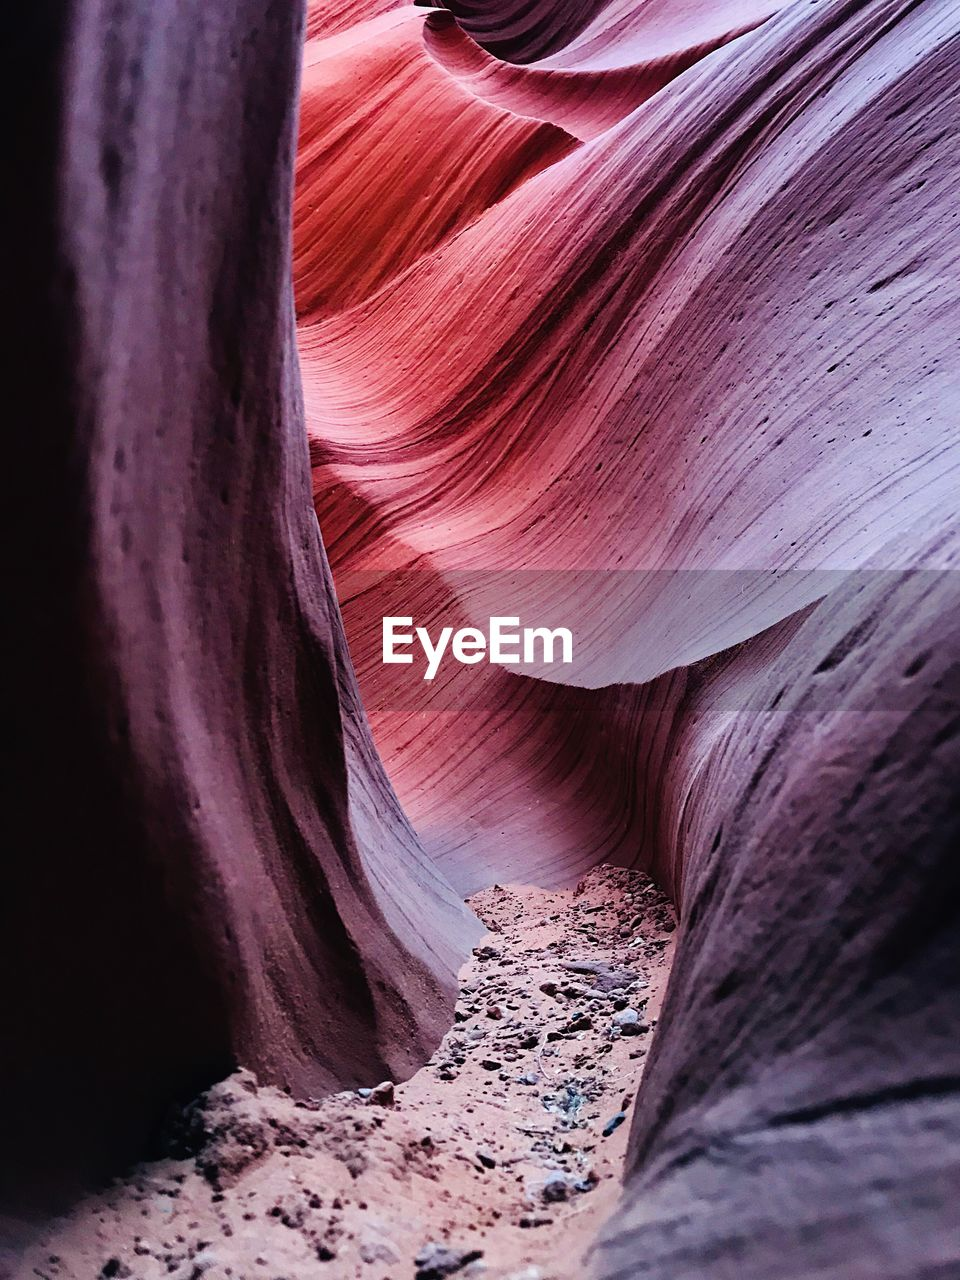 rock formation, rock - object, geology, physical geography, canyon, nature, beauty in nature, sandstone, purple, travel destinations, textured, scenics, no people, travel, tranquility, landscape, arid climate, outdoors, desert, day